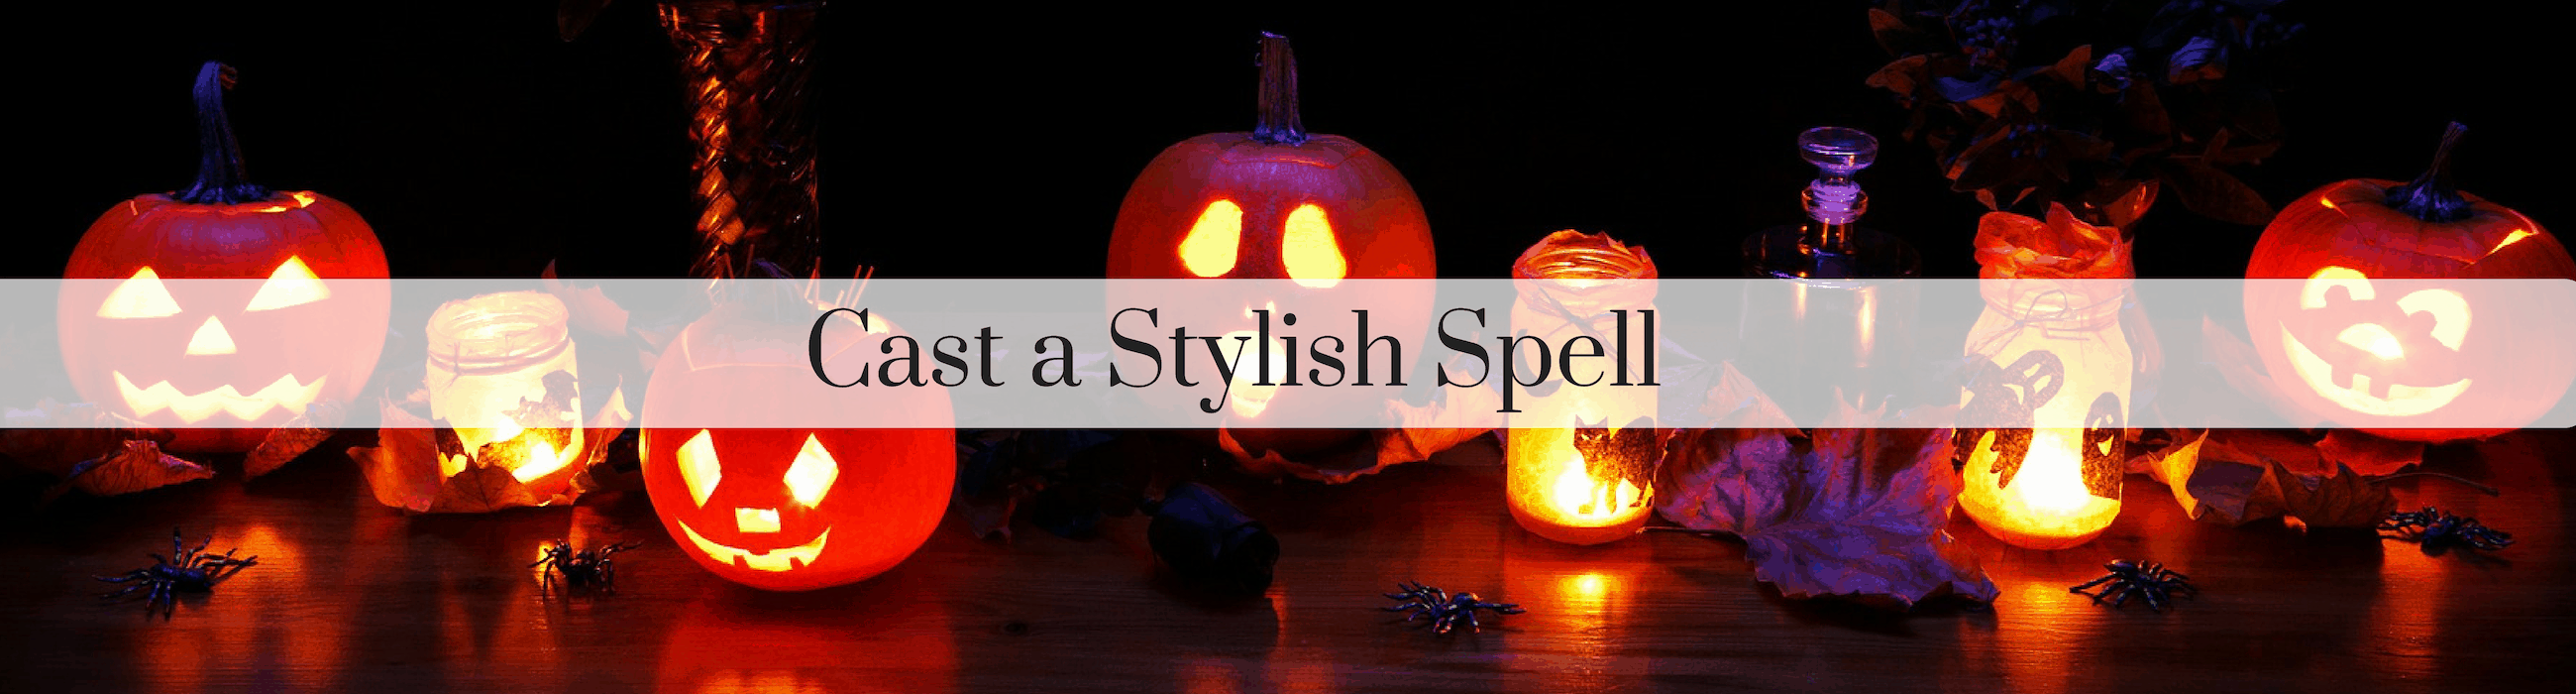 Cast a Stylish Spell Spooky Halloween Celebration